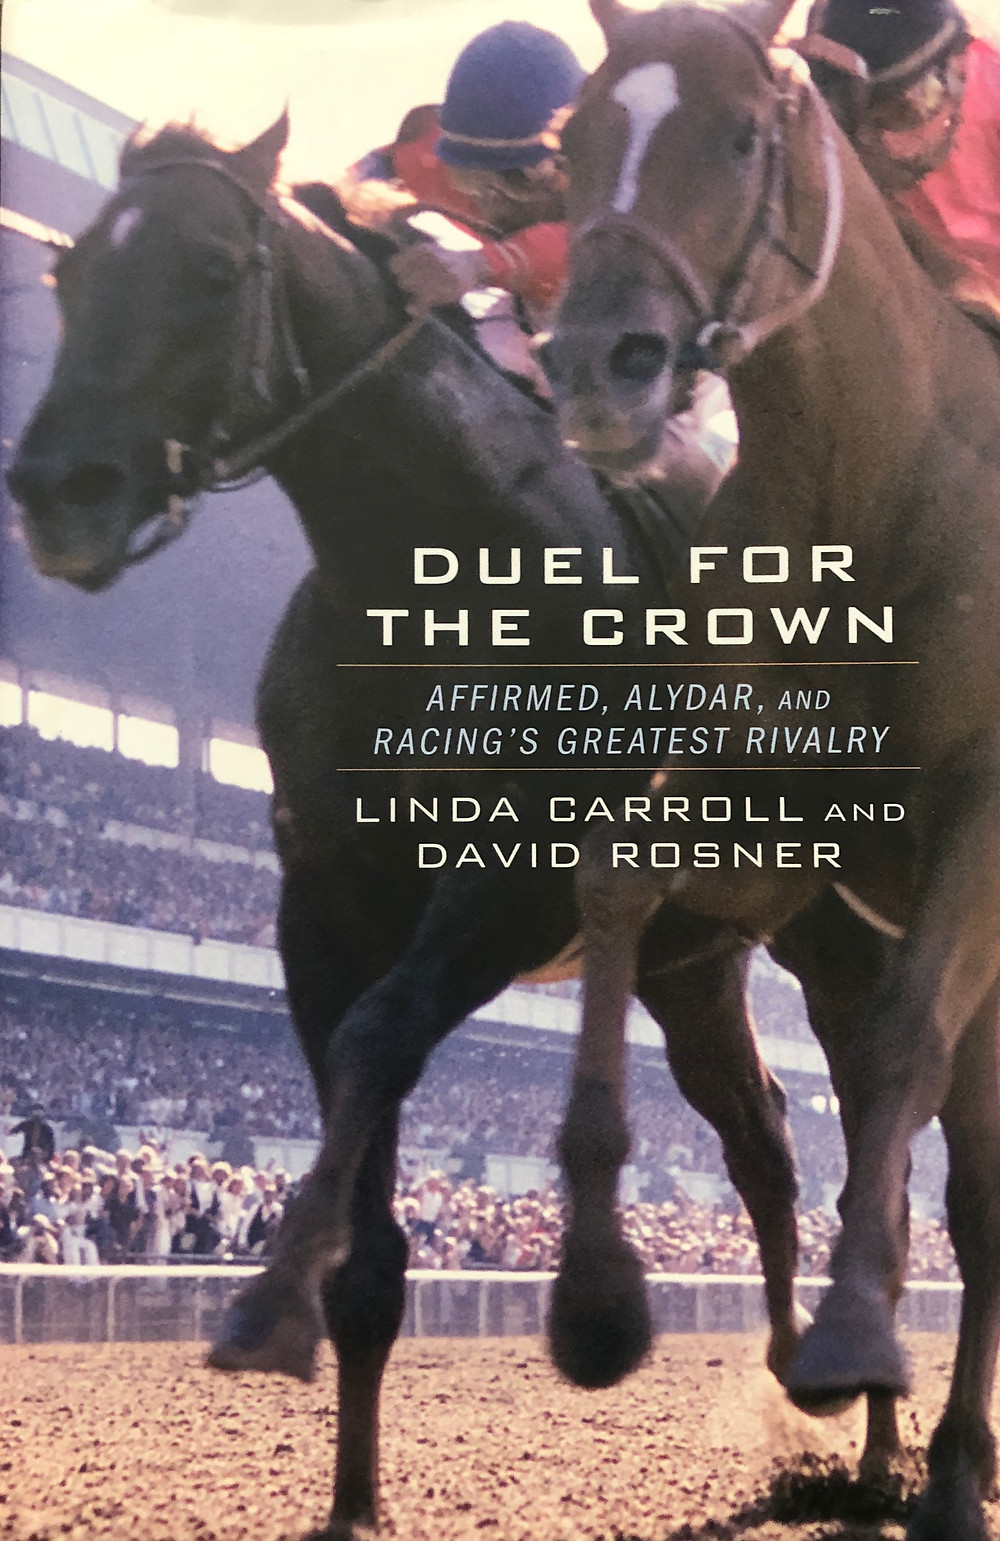 Duel for the Crown, Affirmed and Alydar book